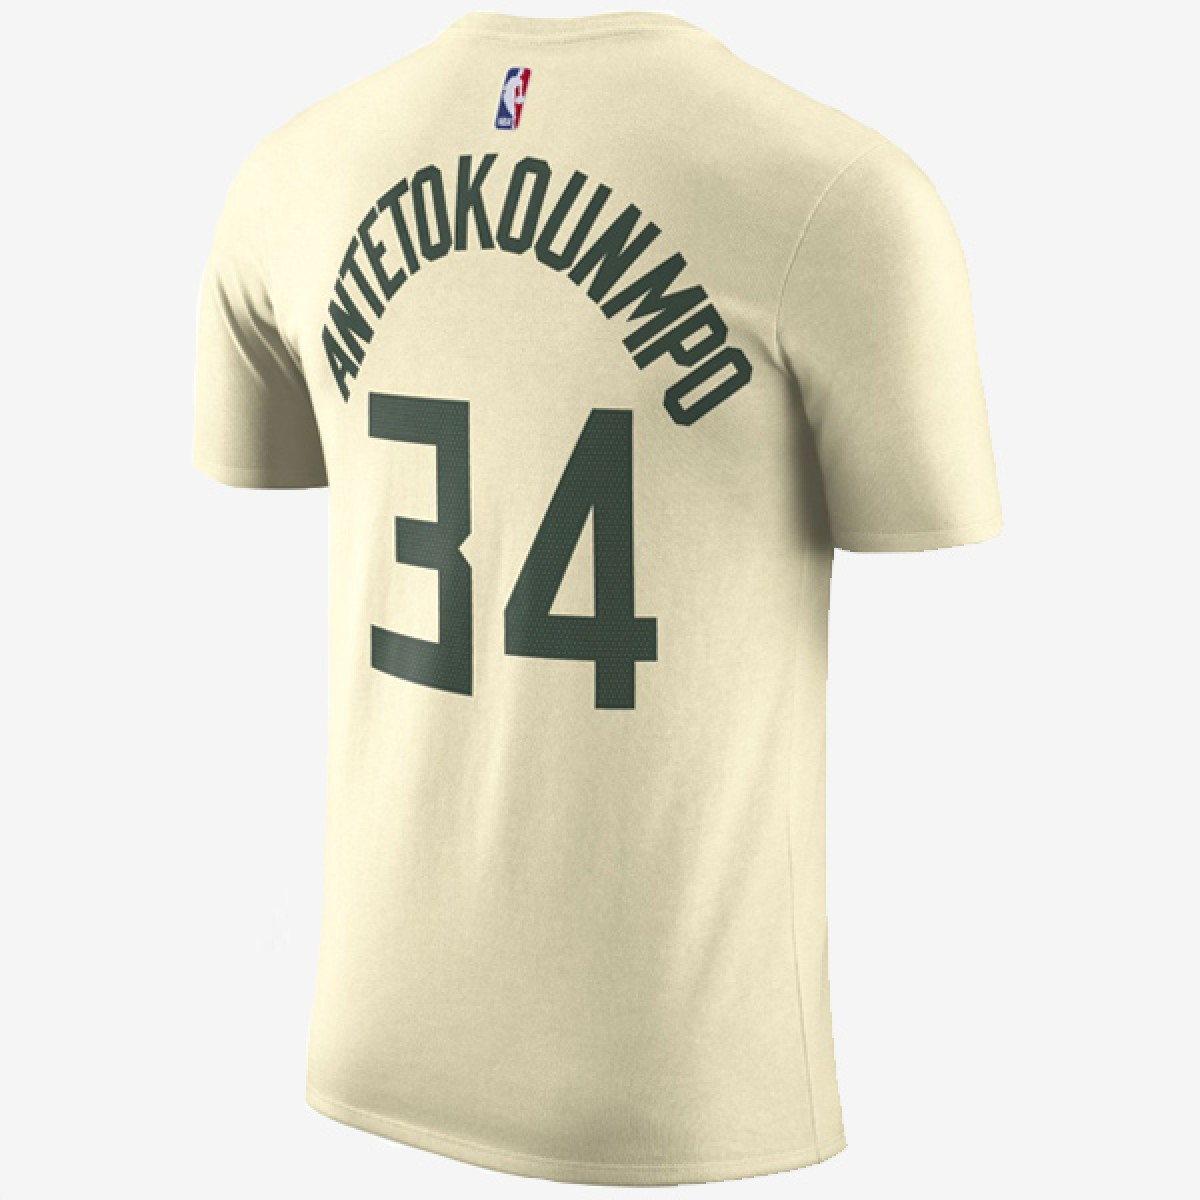 Nike Giannis Antetokoumpo Milwaukee Bucks Dry Tee 'City Edition' AA2596-211